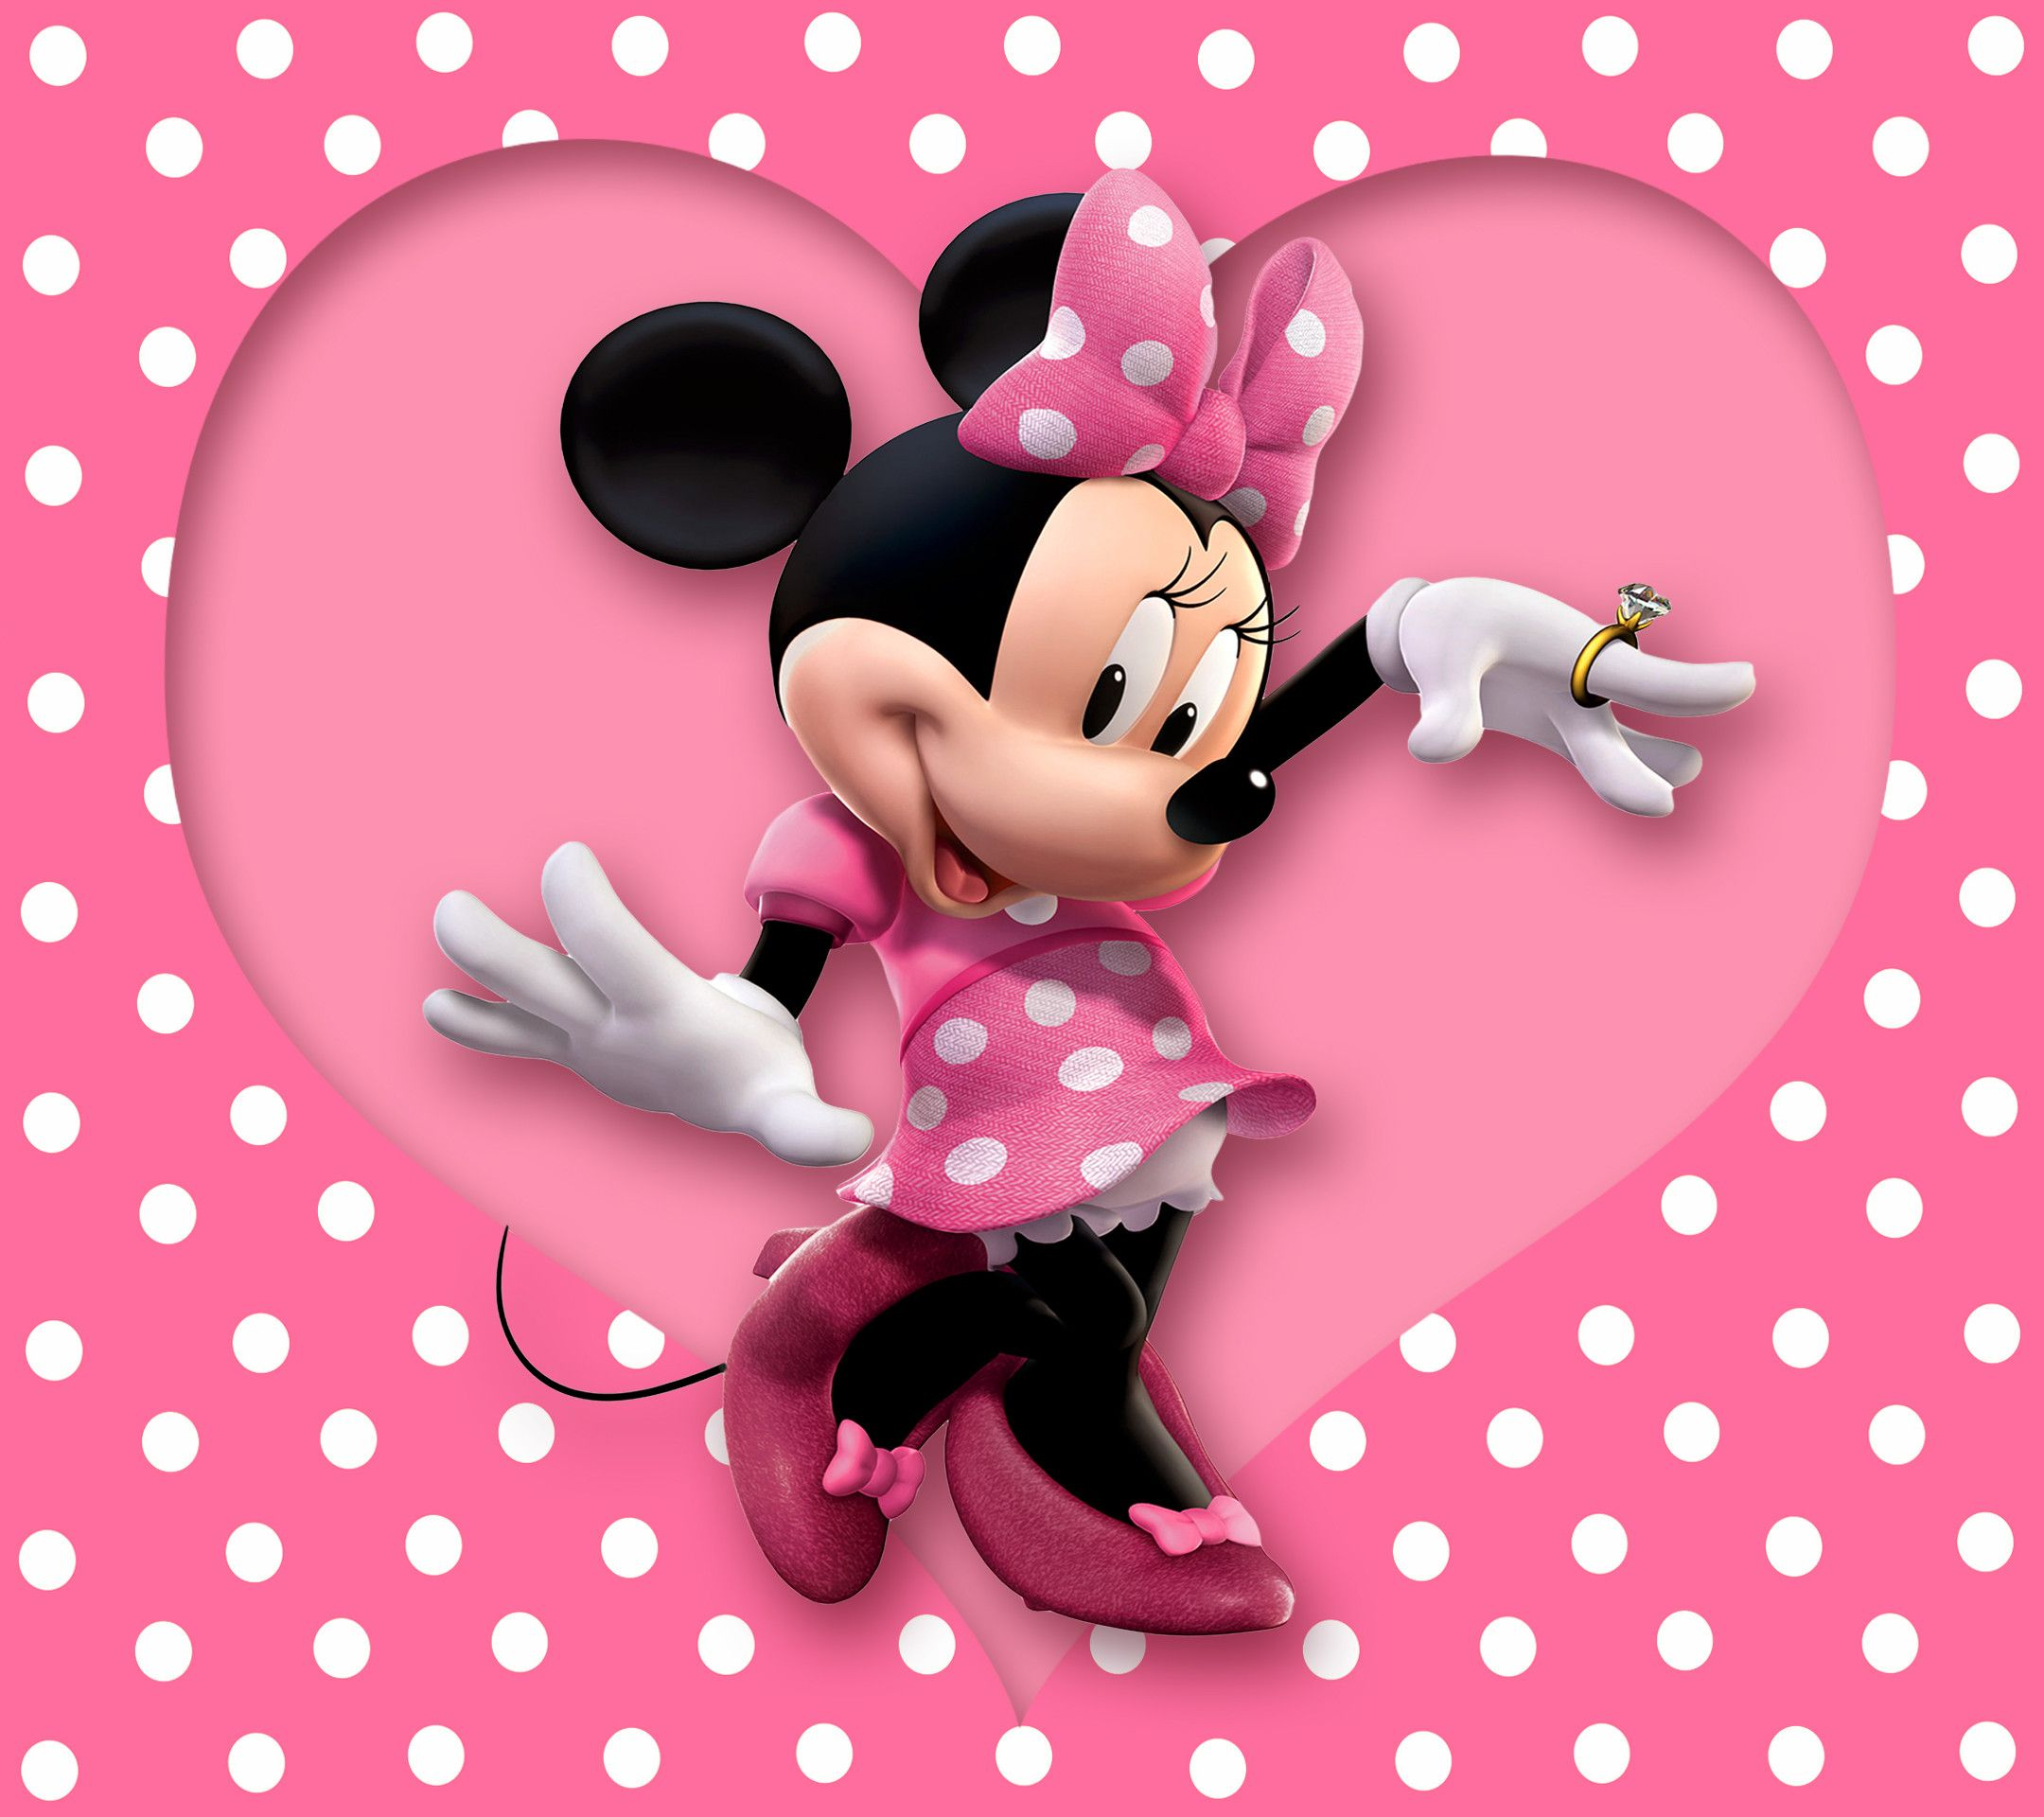 Minnie Mouse Wallpapers Top Free Minnie Mouse Backgrounds